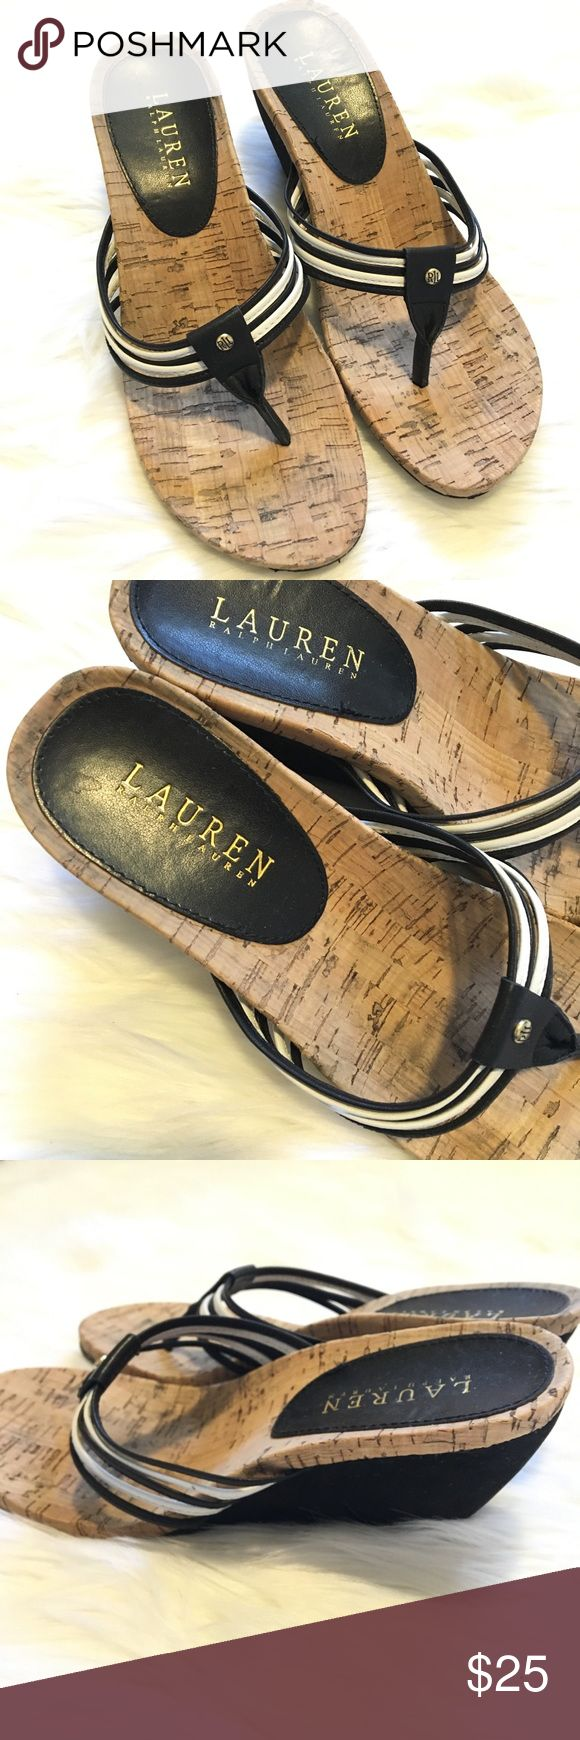 Ralph Lauren black & white cork thong sandals 7.5 Lauren Ralph Lauren cork flip flop slip on sandals. Black and white straps. Size 7.5. Fit true to size. Small dent / scuff on side of right shoe. Hardly noticeable. See last photo. Super comfortable, cushion sole. Great shape. Dress up or down. Goes with work attire or casual weekend attire. Smoke free home. #ralphlauren #black #white #cork #flip #shoes #slipon #woman #casual #sandal ❌no trades❌ Lauren Ralph Lauren Shoes Sandals